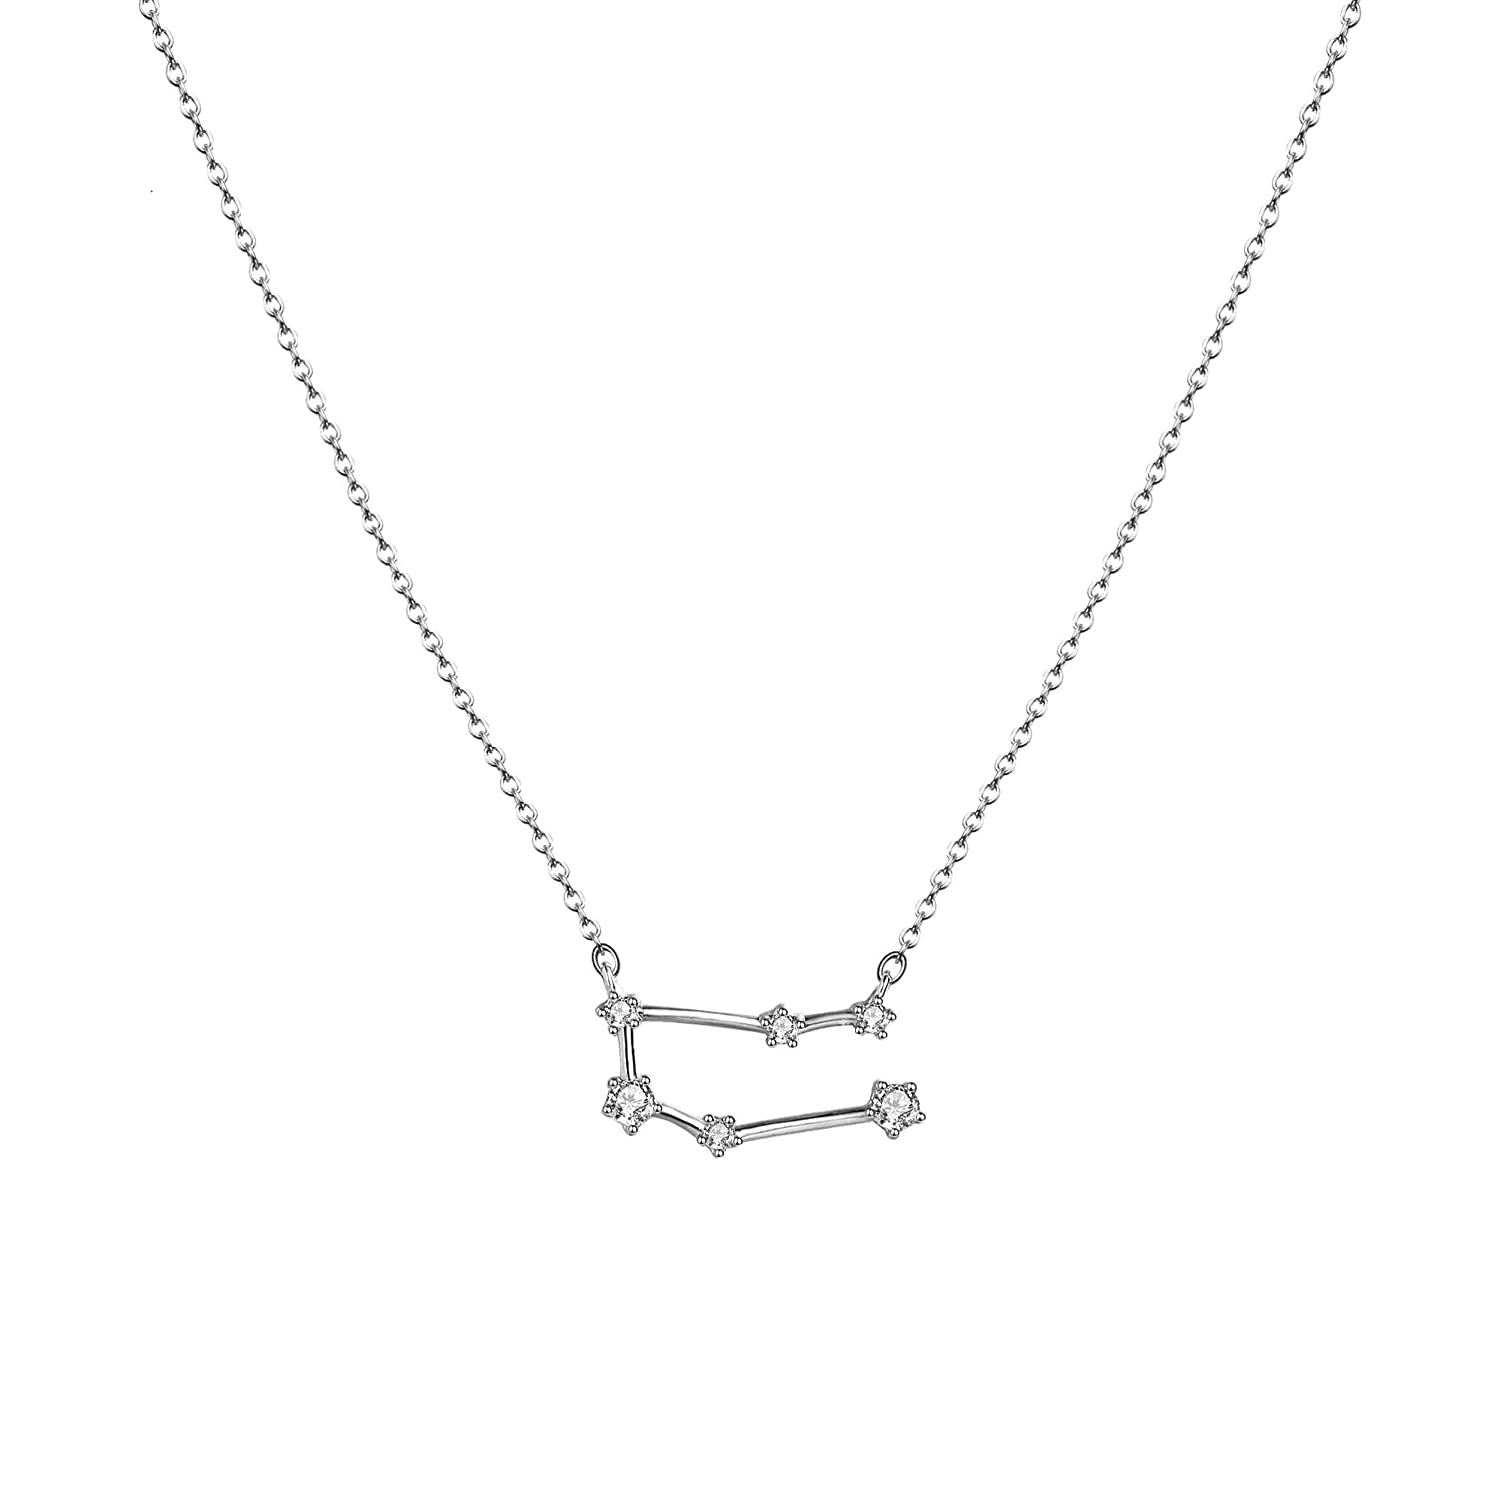 Silver Astrology Constellation Horoscope Pendant Necklace Delicate Rhinestone Sign Elegant CZ Necklace for Women Citled Women/'s Zodiac Necklace